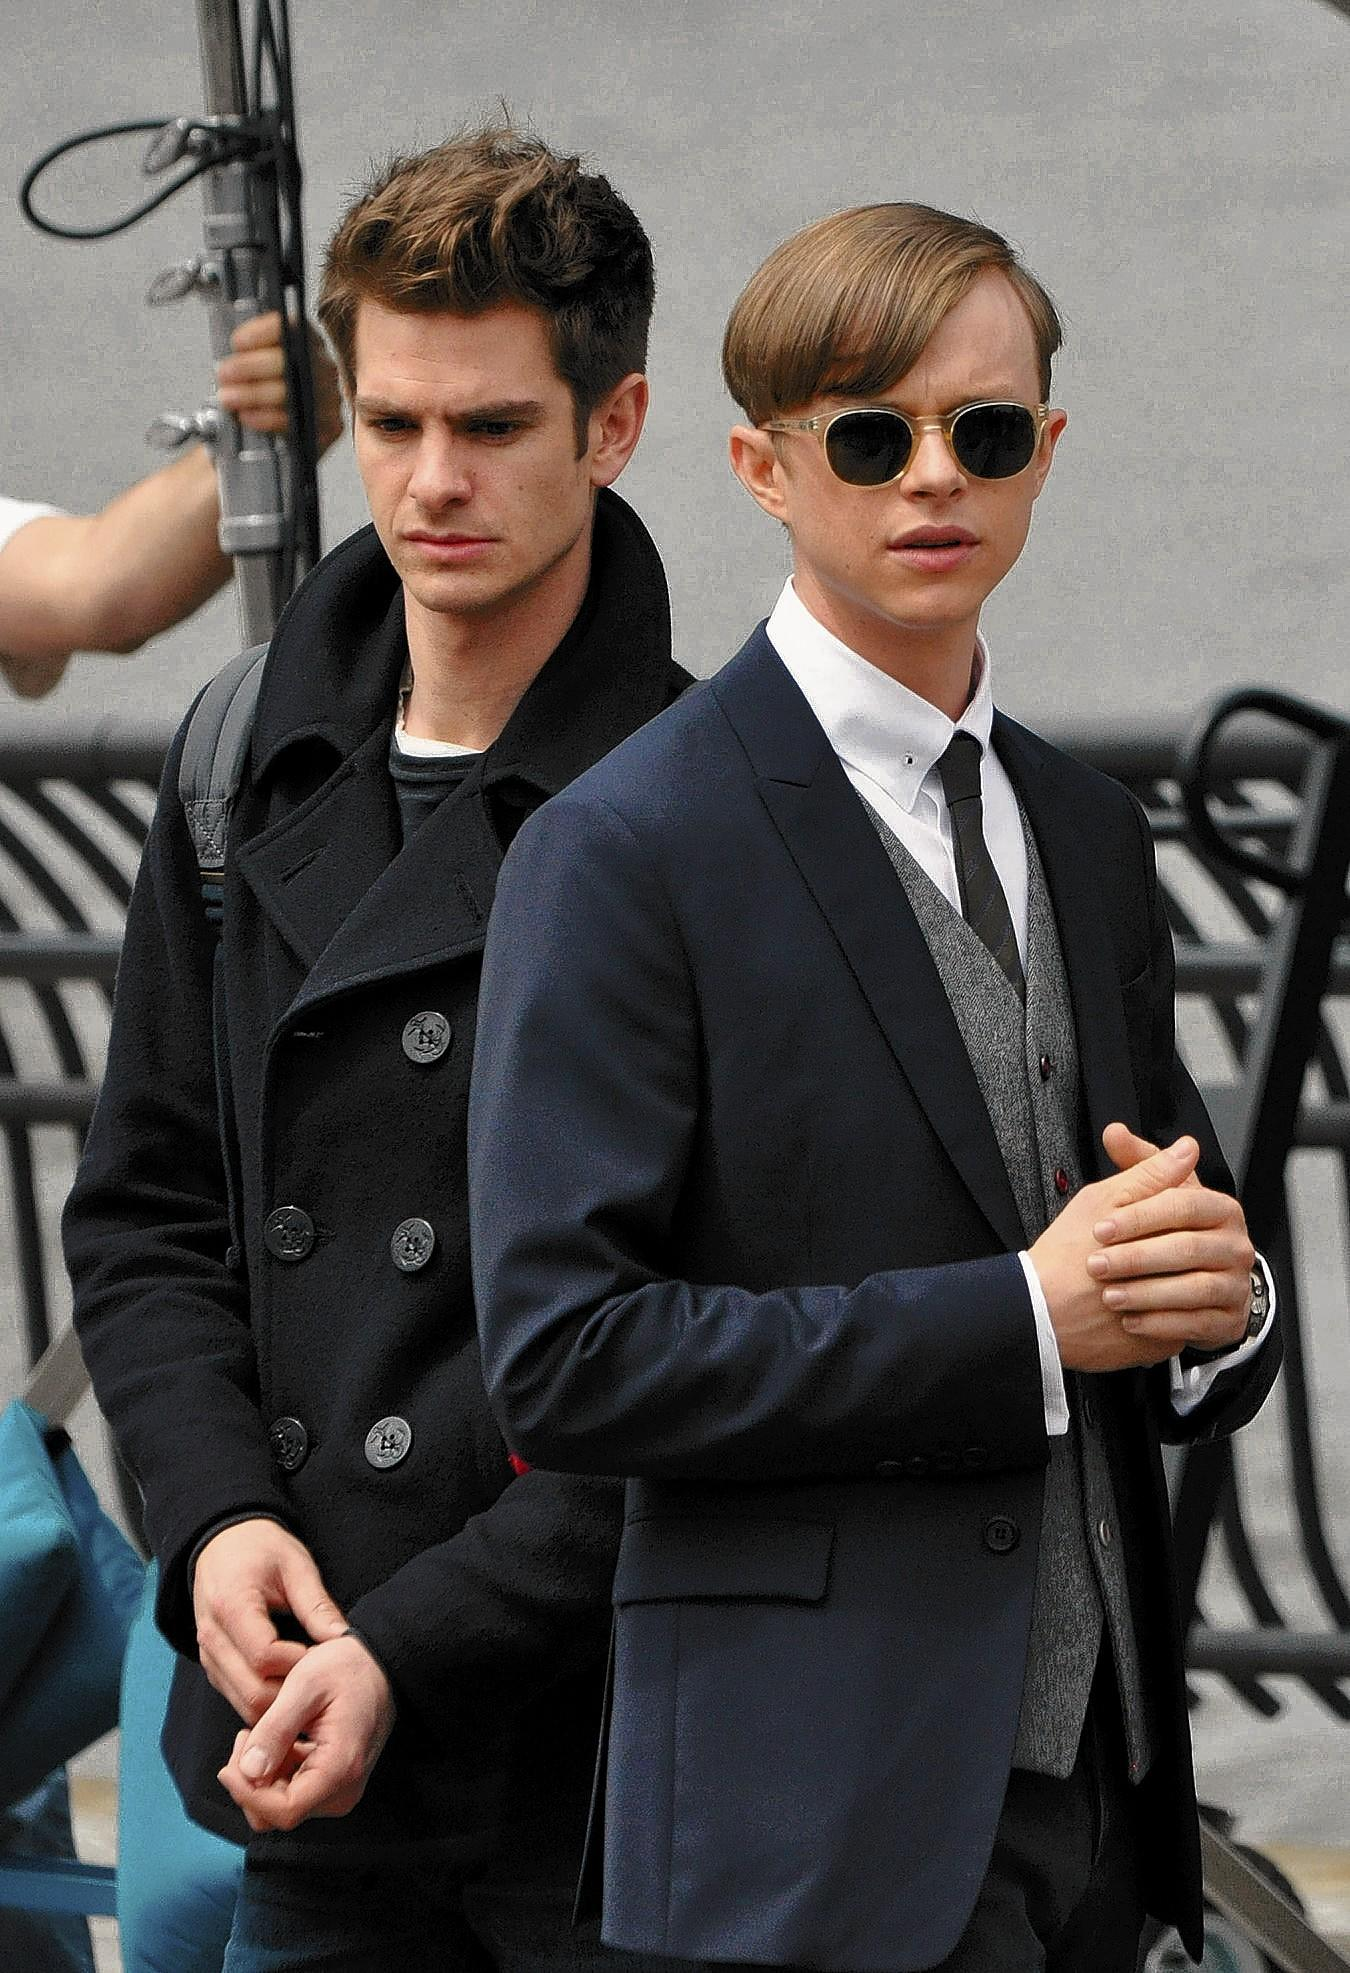 Allentown native Dane DeHaan and Andrew Garfield filming on location in New York City for 'The Amazing Spider-Man 2.'